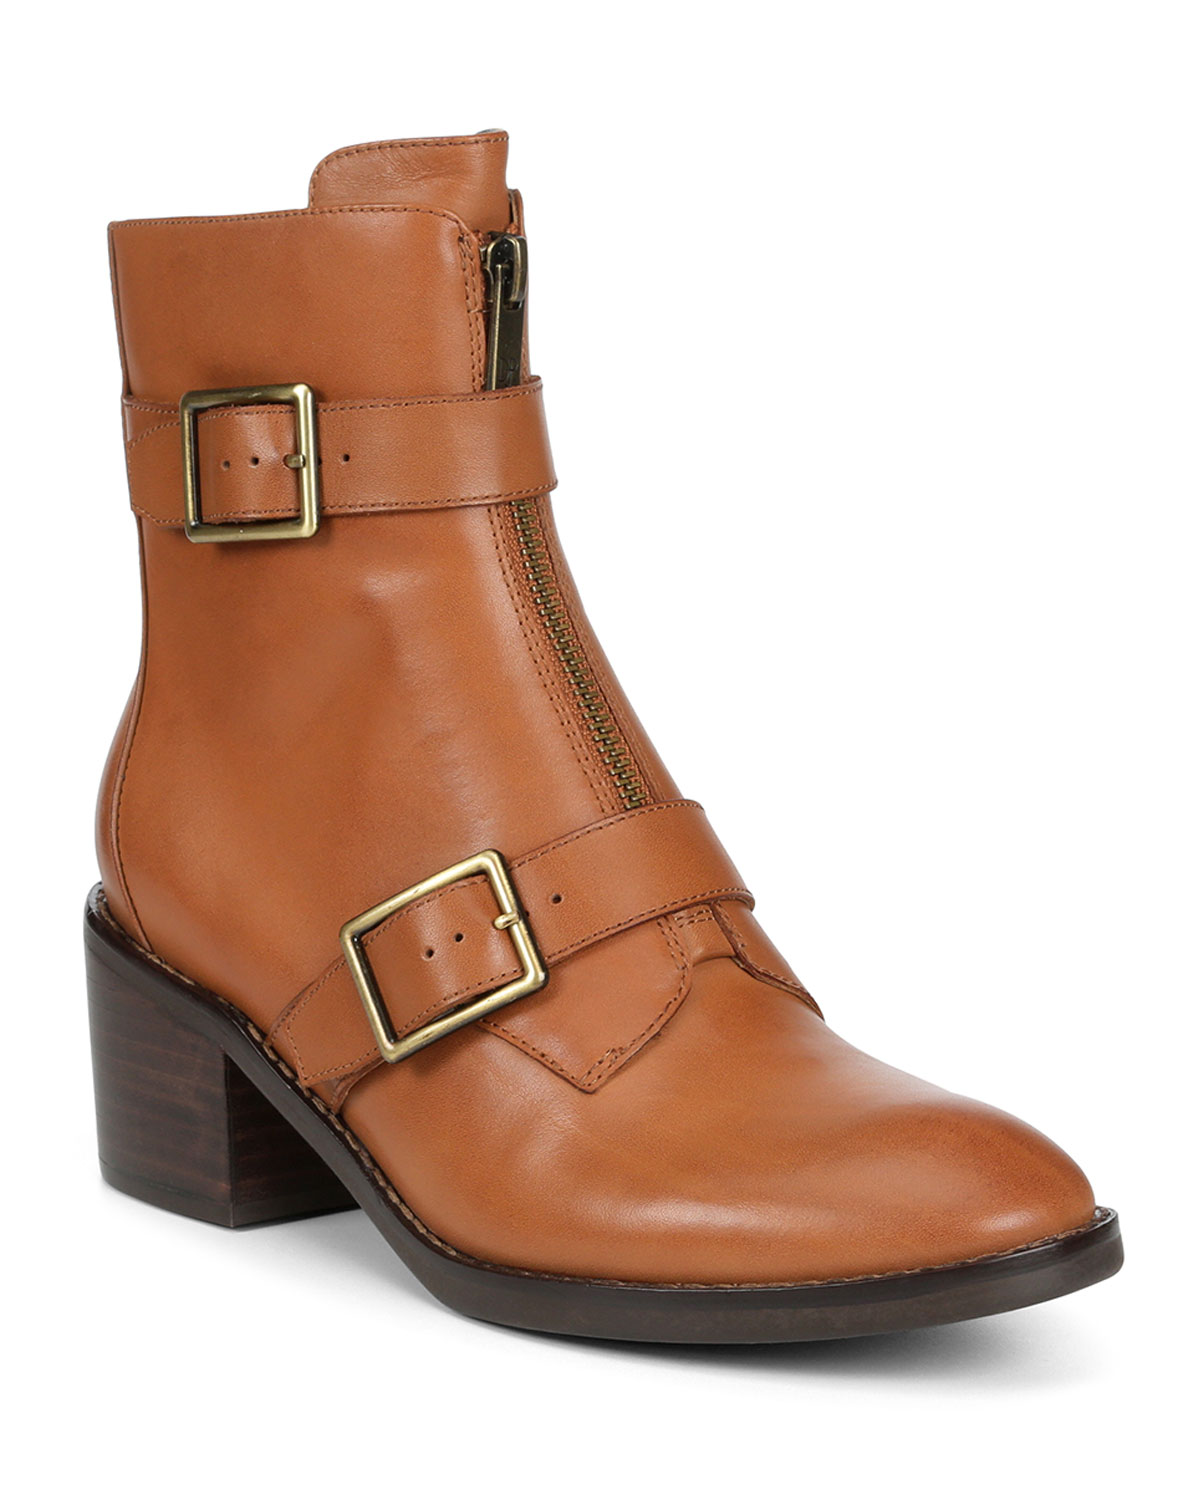 Dusten Engineer Booties